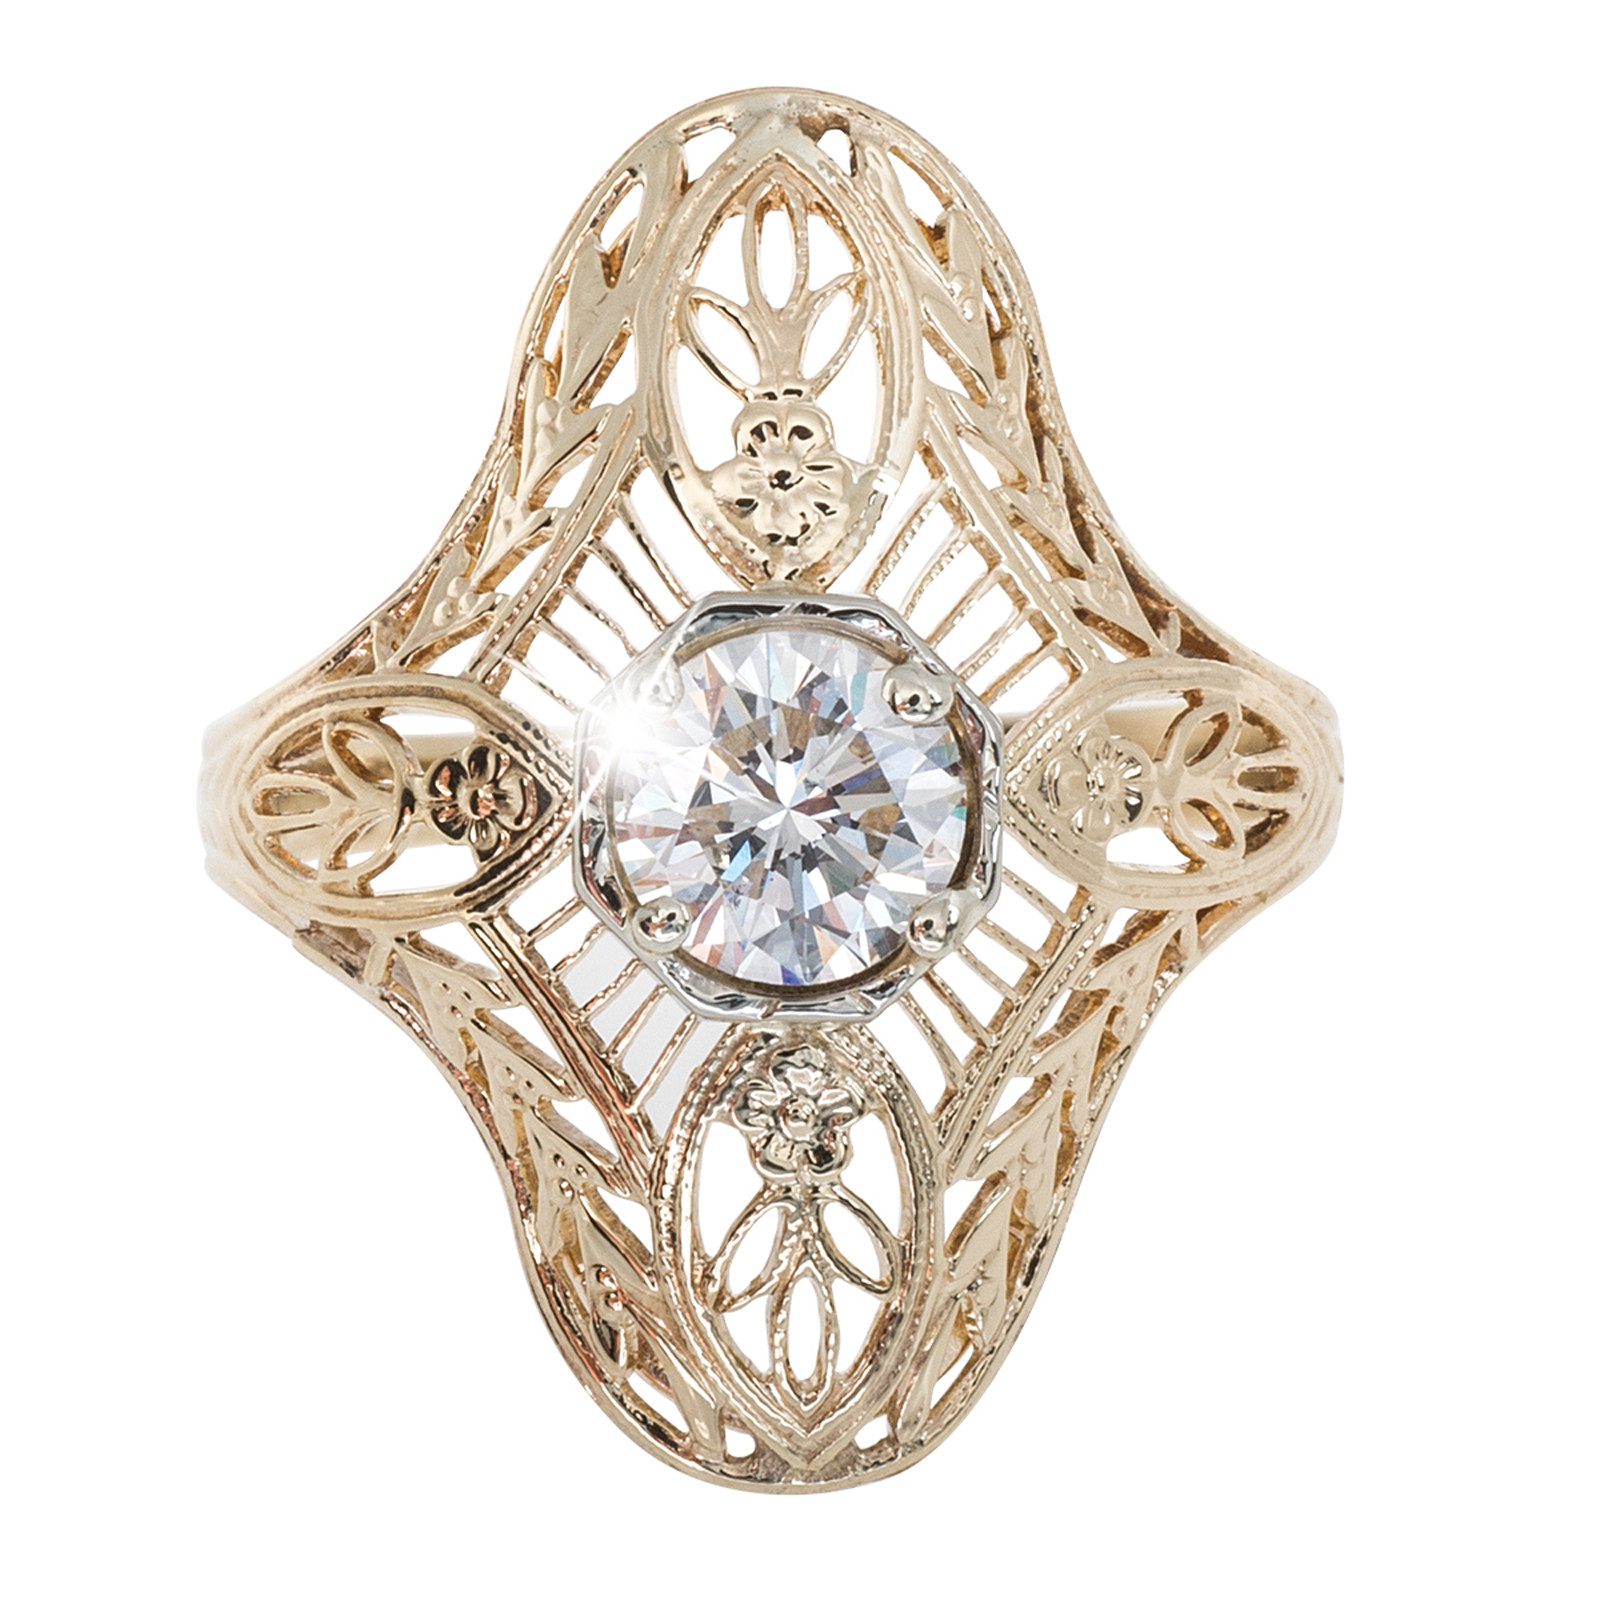 Vintage Retro-Inspired 0.57 CT Diamond Engagement Ring